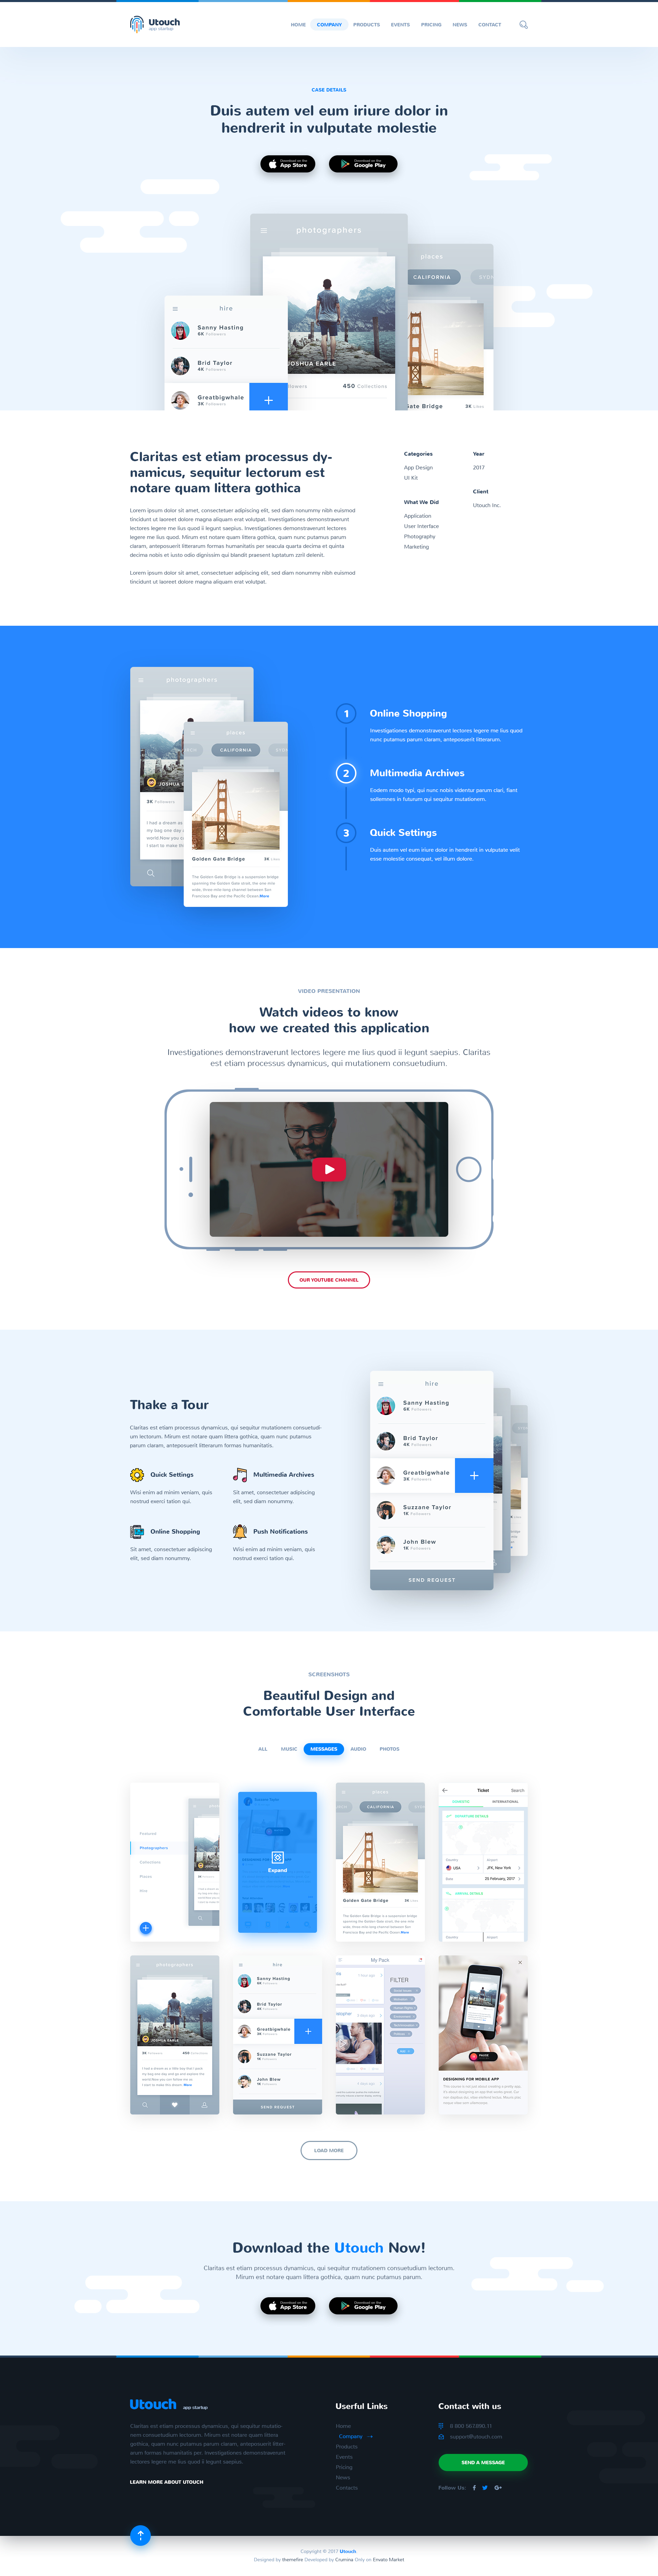 Utouch - App Startup Website PSD Template by themefire | ThemeForest